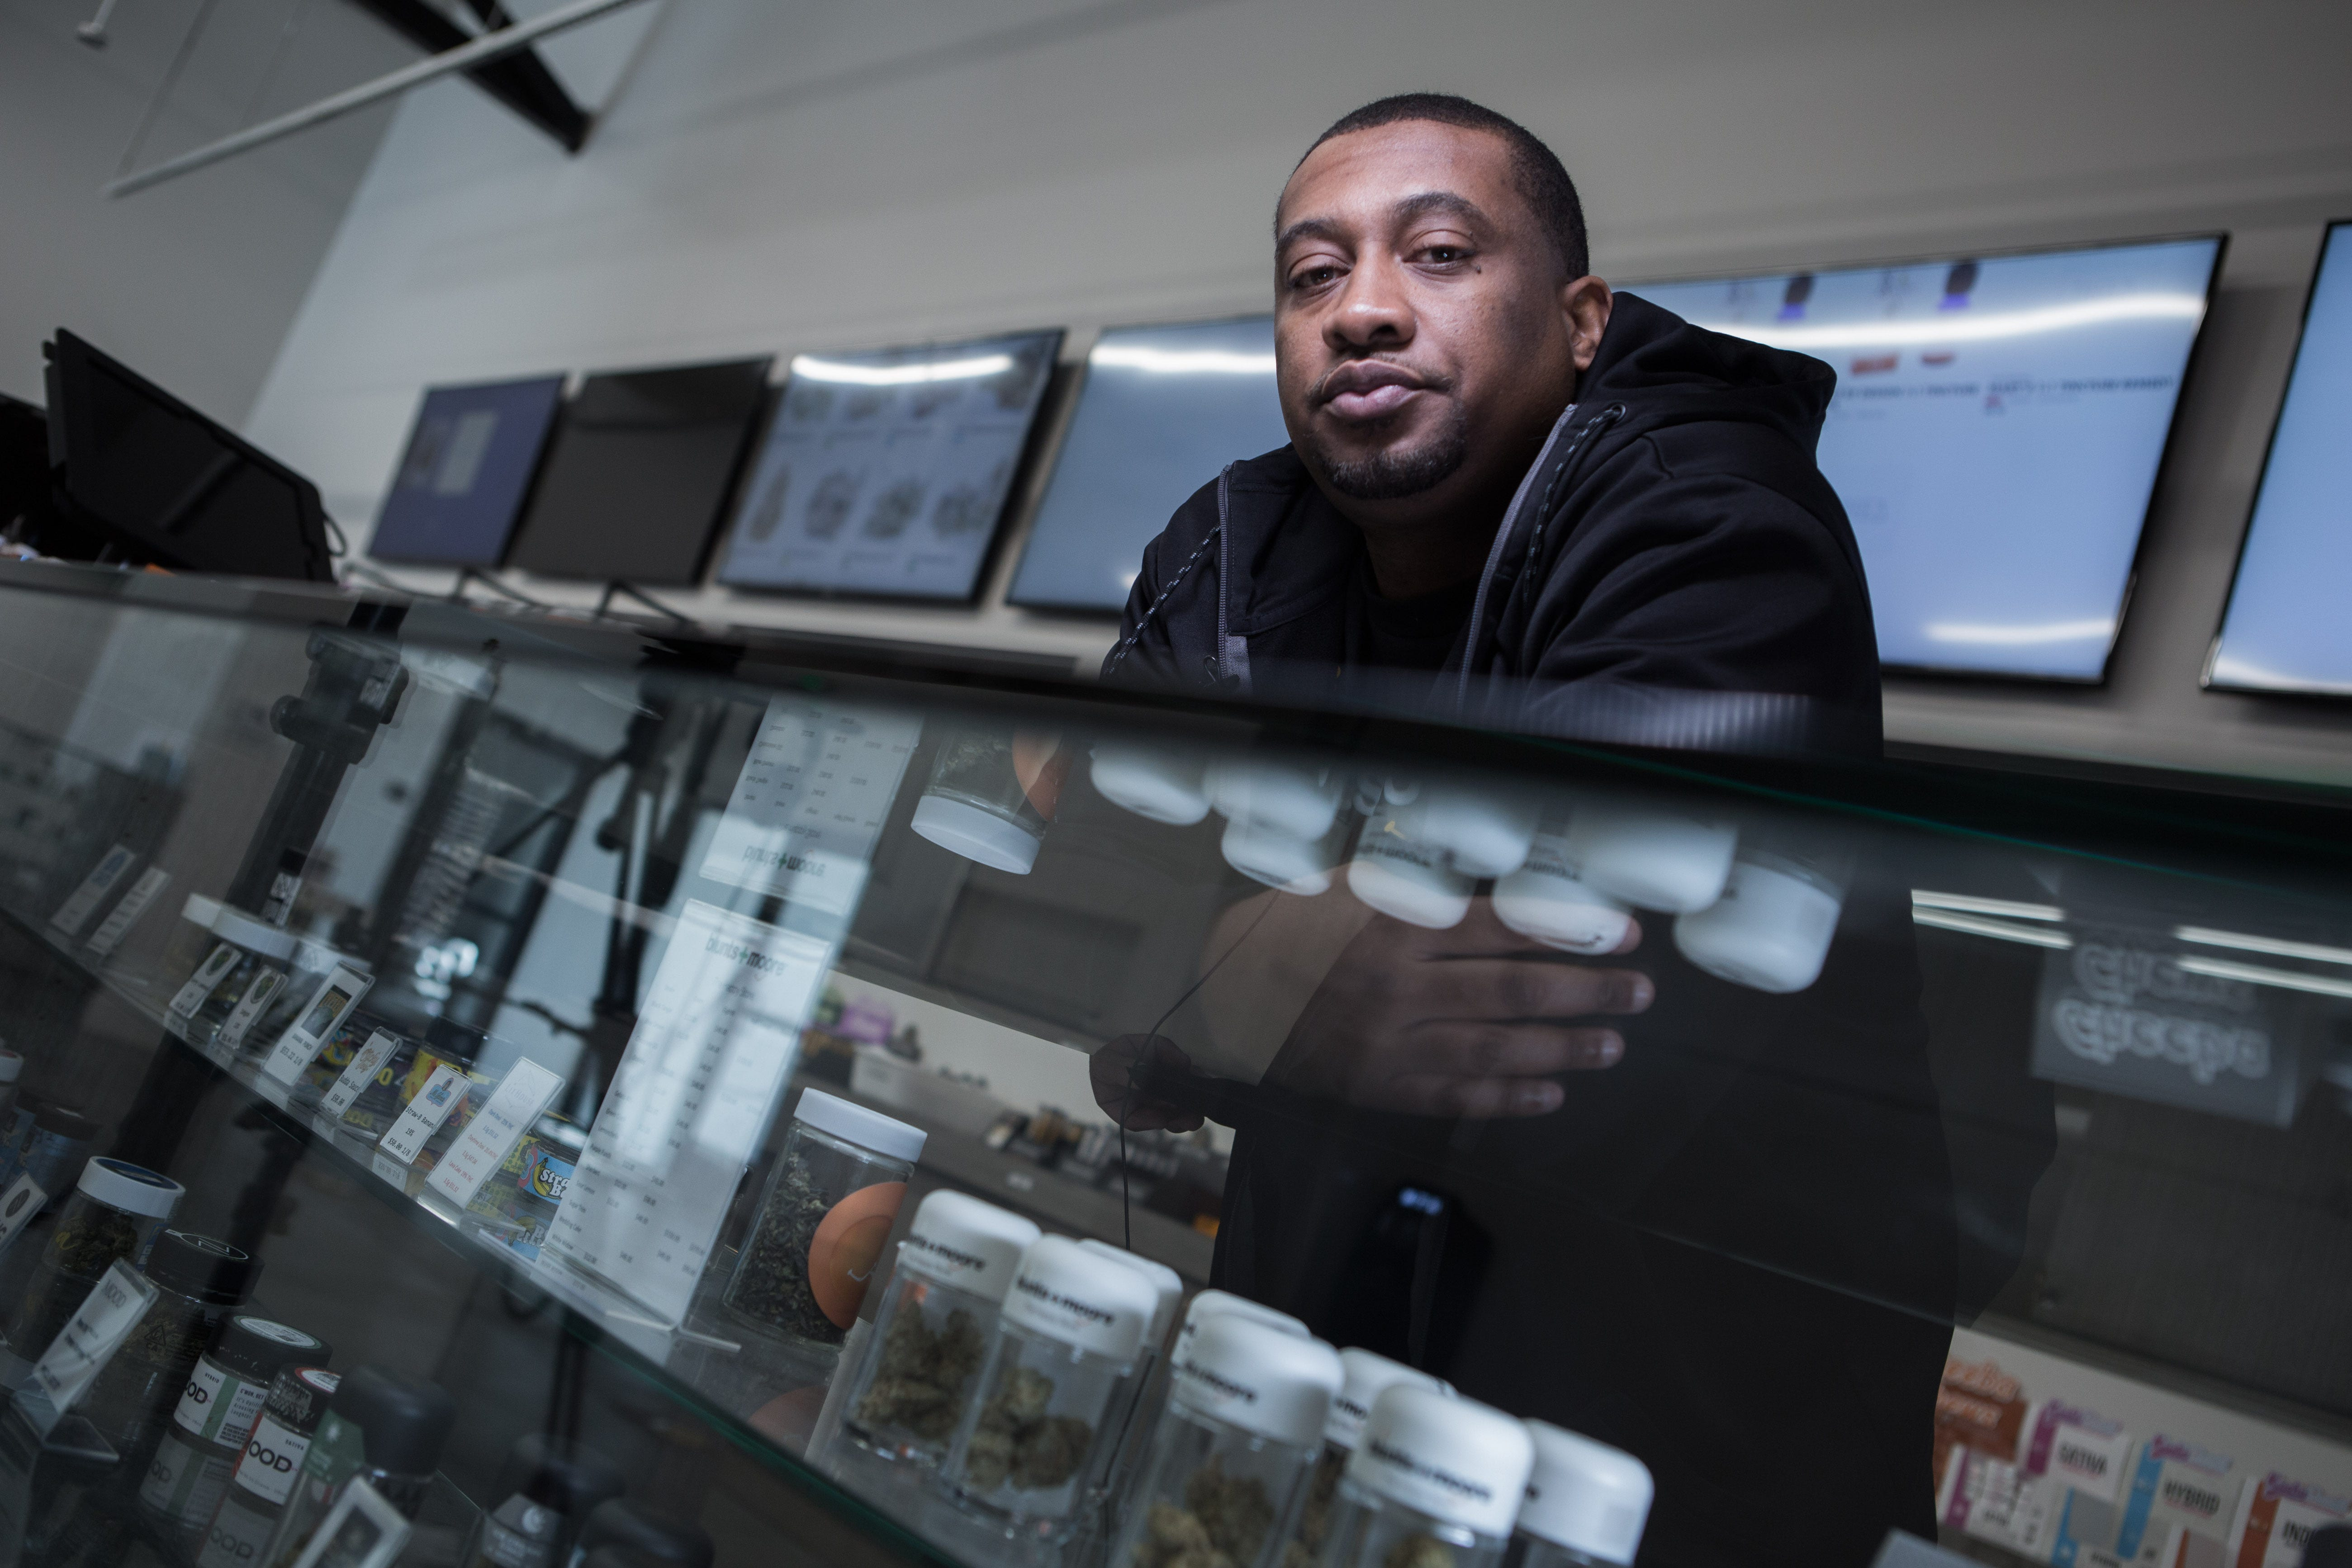 efforts legalize marijuana help blacks, Latinos hurt most war drugs